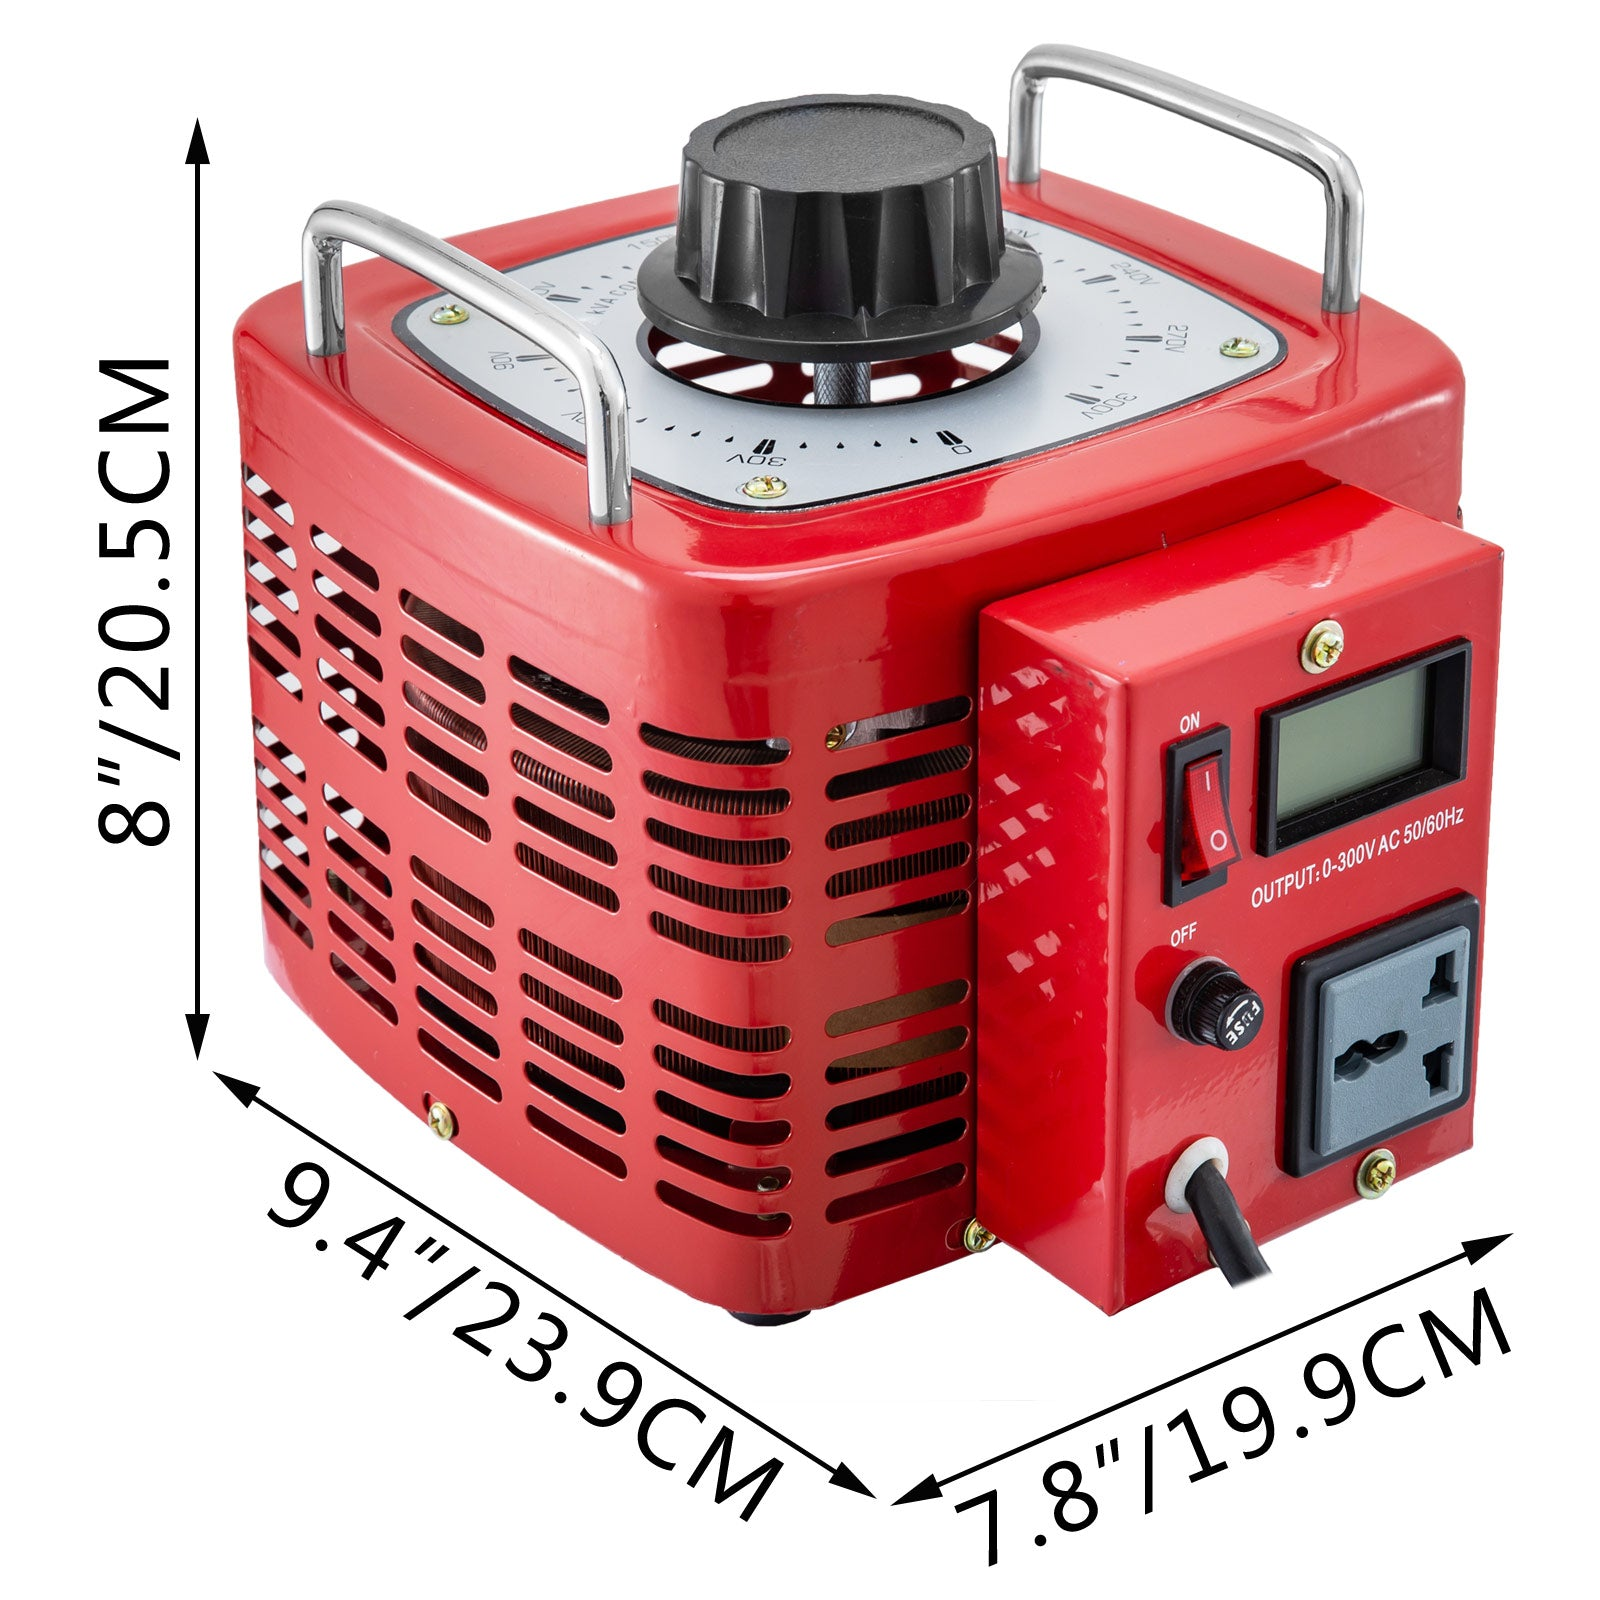 Transformateur Variable 3kva Protection De Sécurité Ecran Lcd 0-300v 12a Rouge